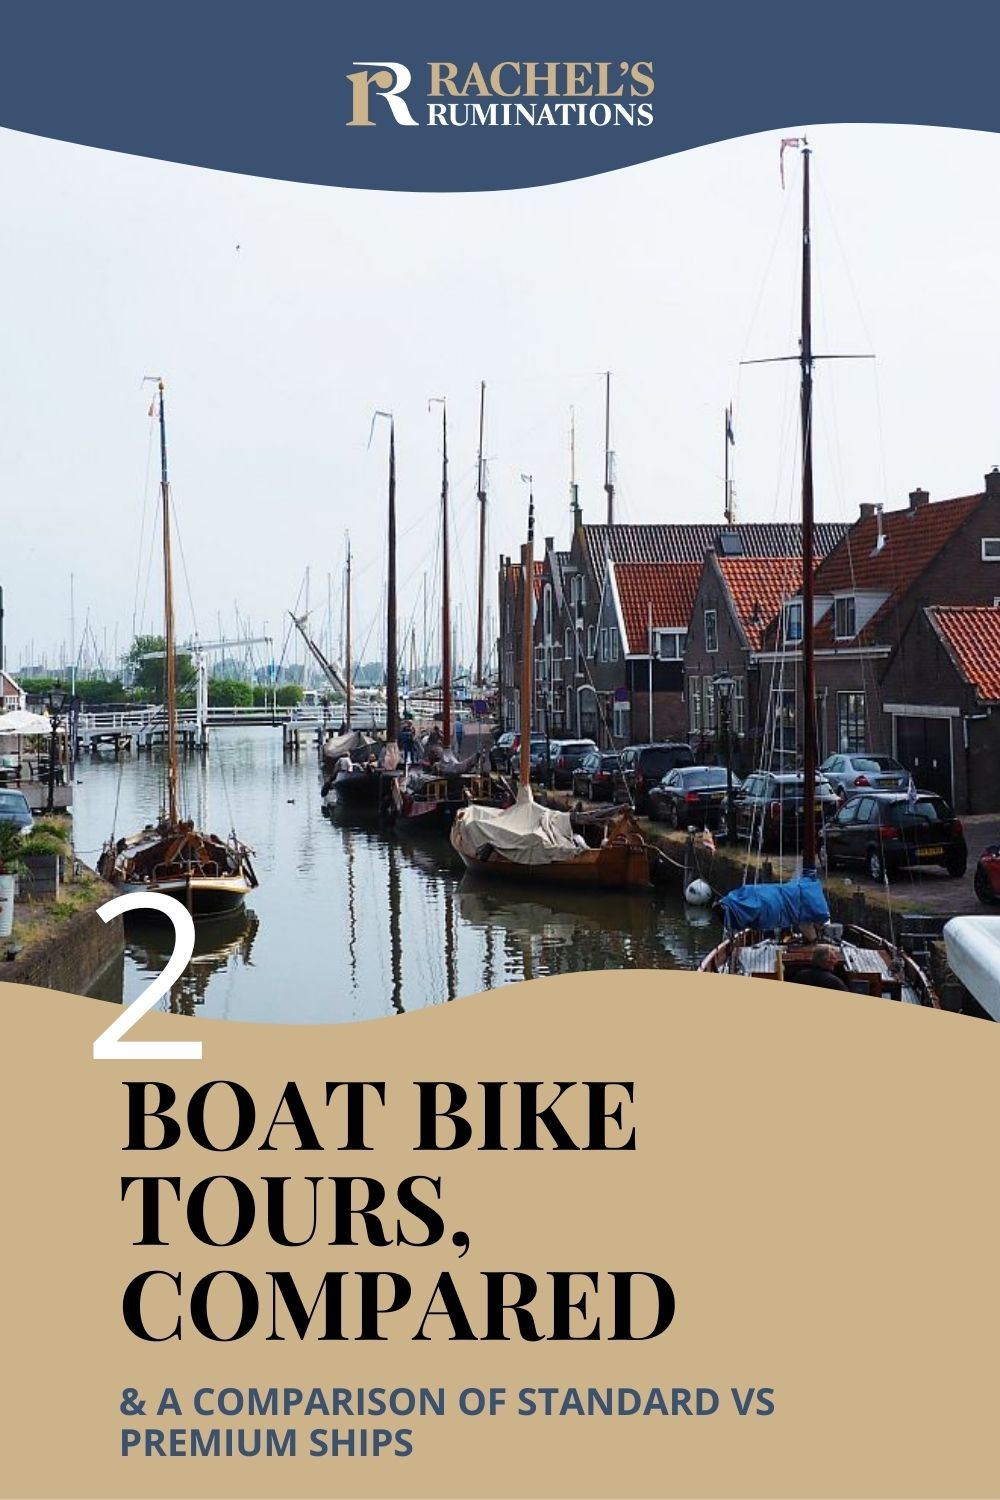 On Boat Bike Tours, the boat serves as a floating hotel while guests go cycling. Read this review of their Northern route trip and a comparison of their standard vs. premium ships, plus some tips! via @rachelsruminations